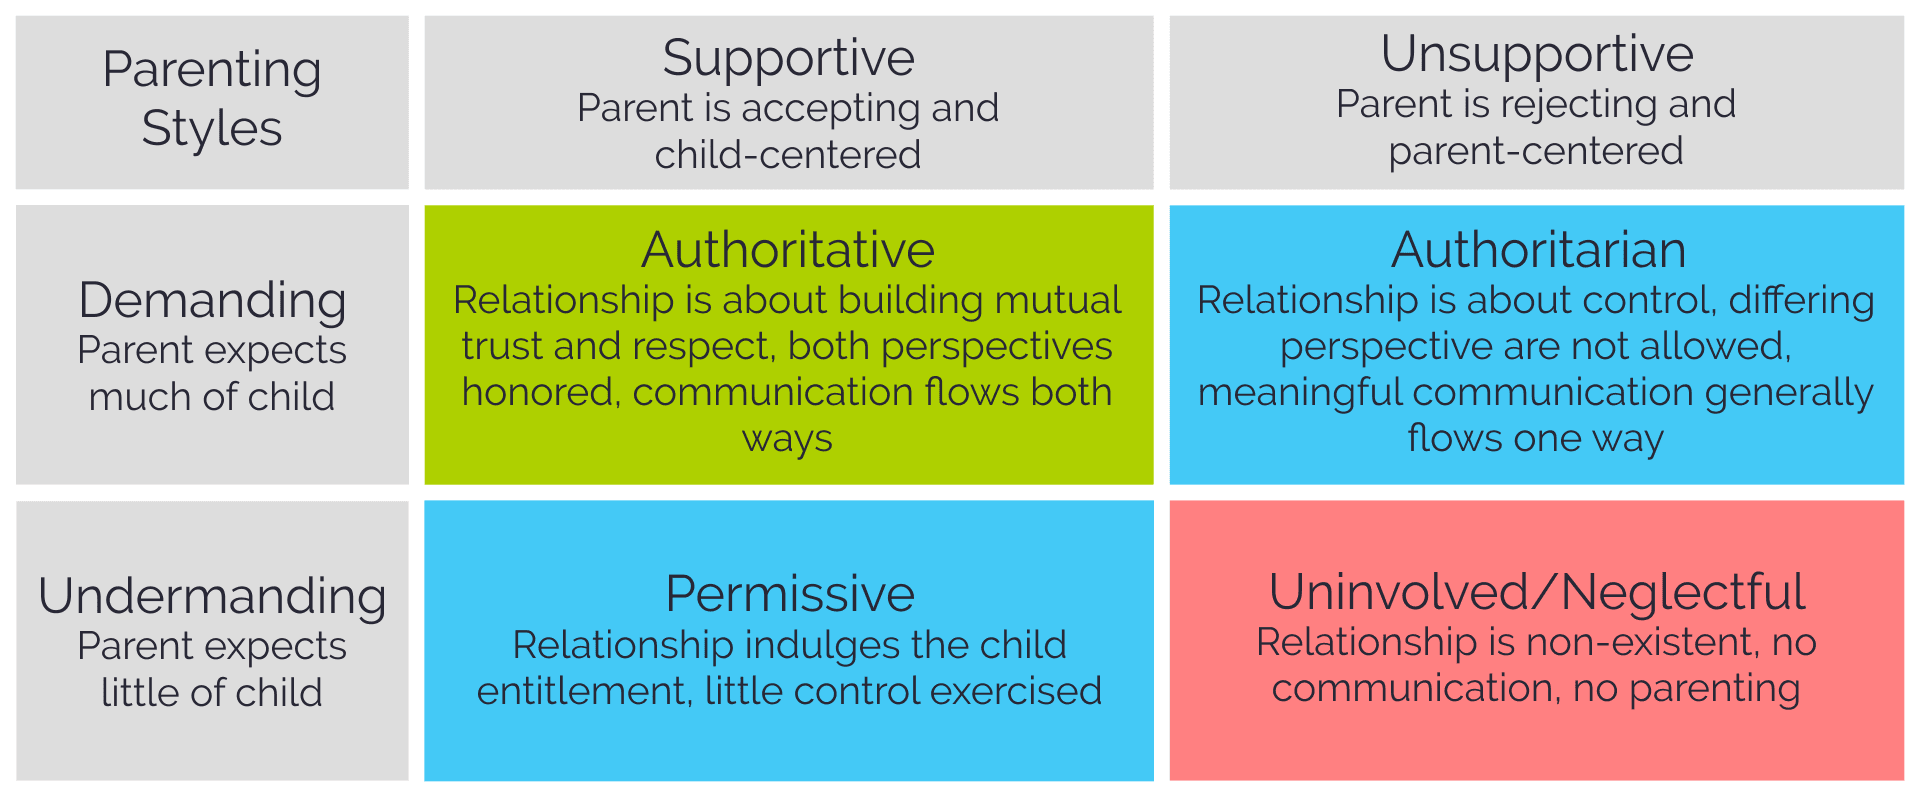 the parental warmth and parental control psychology essay However, research shows that strict, or authoritarian, parenting produces kids   that keep kids functioning at a high level, combined with the warmth and support  of  grolnick, wendy s the psychology of parental control: how well-meant.